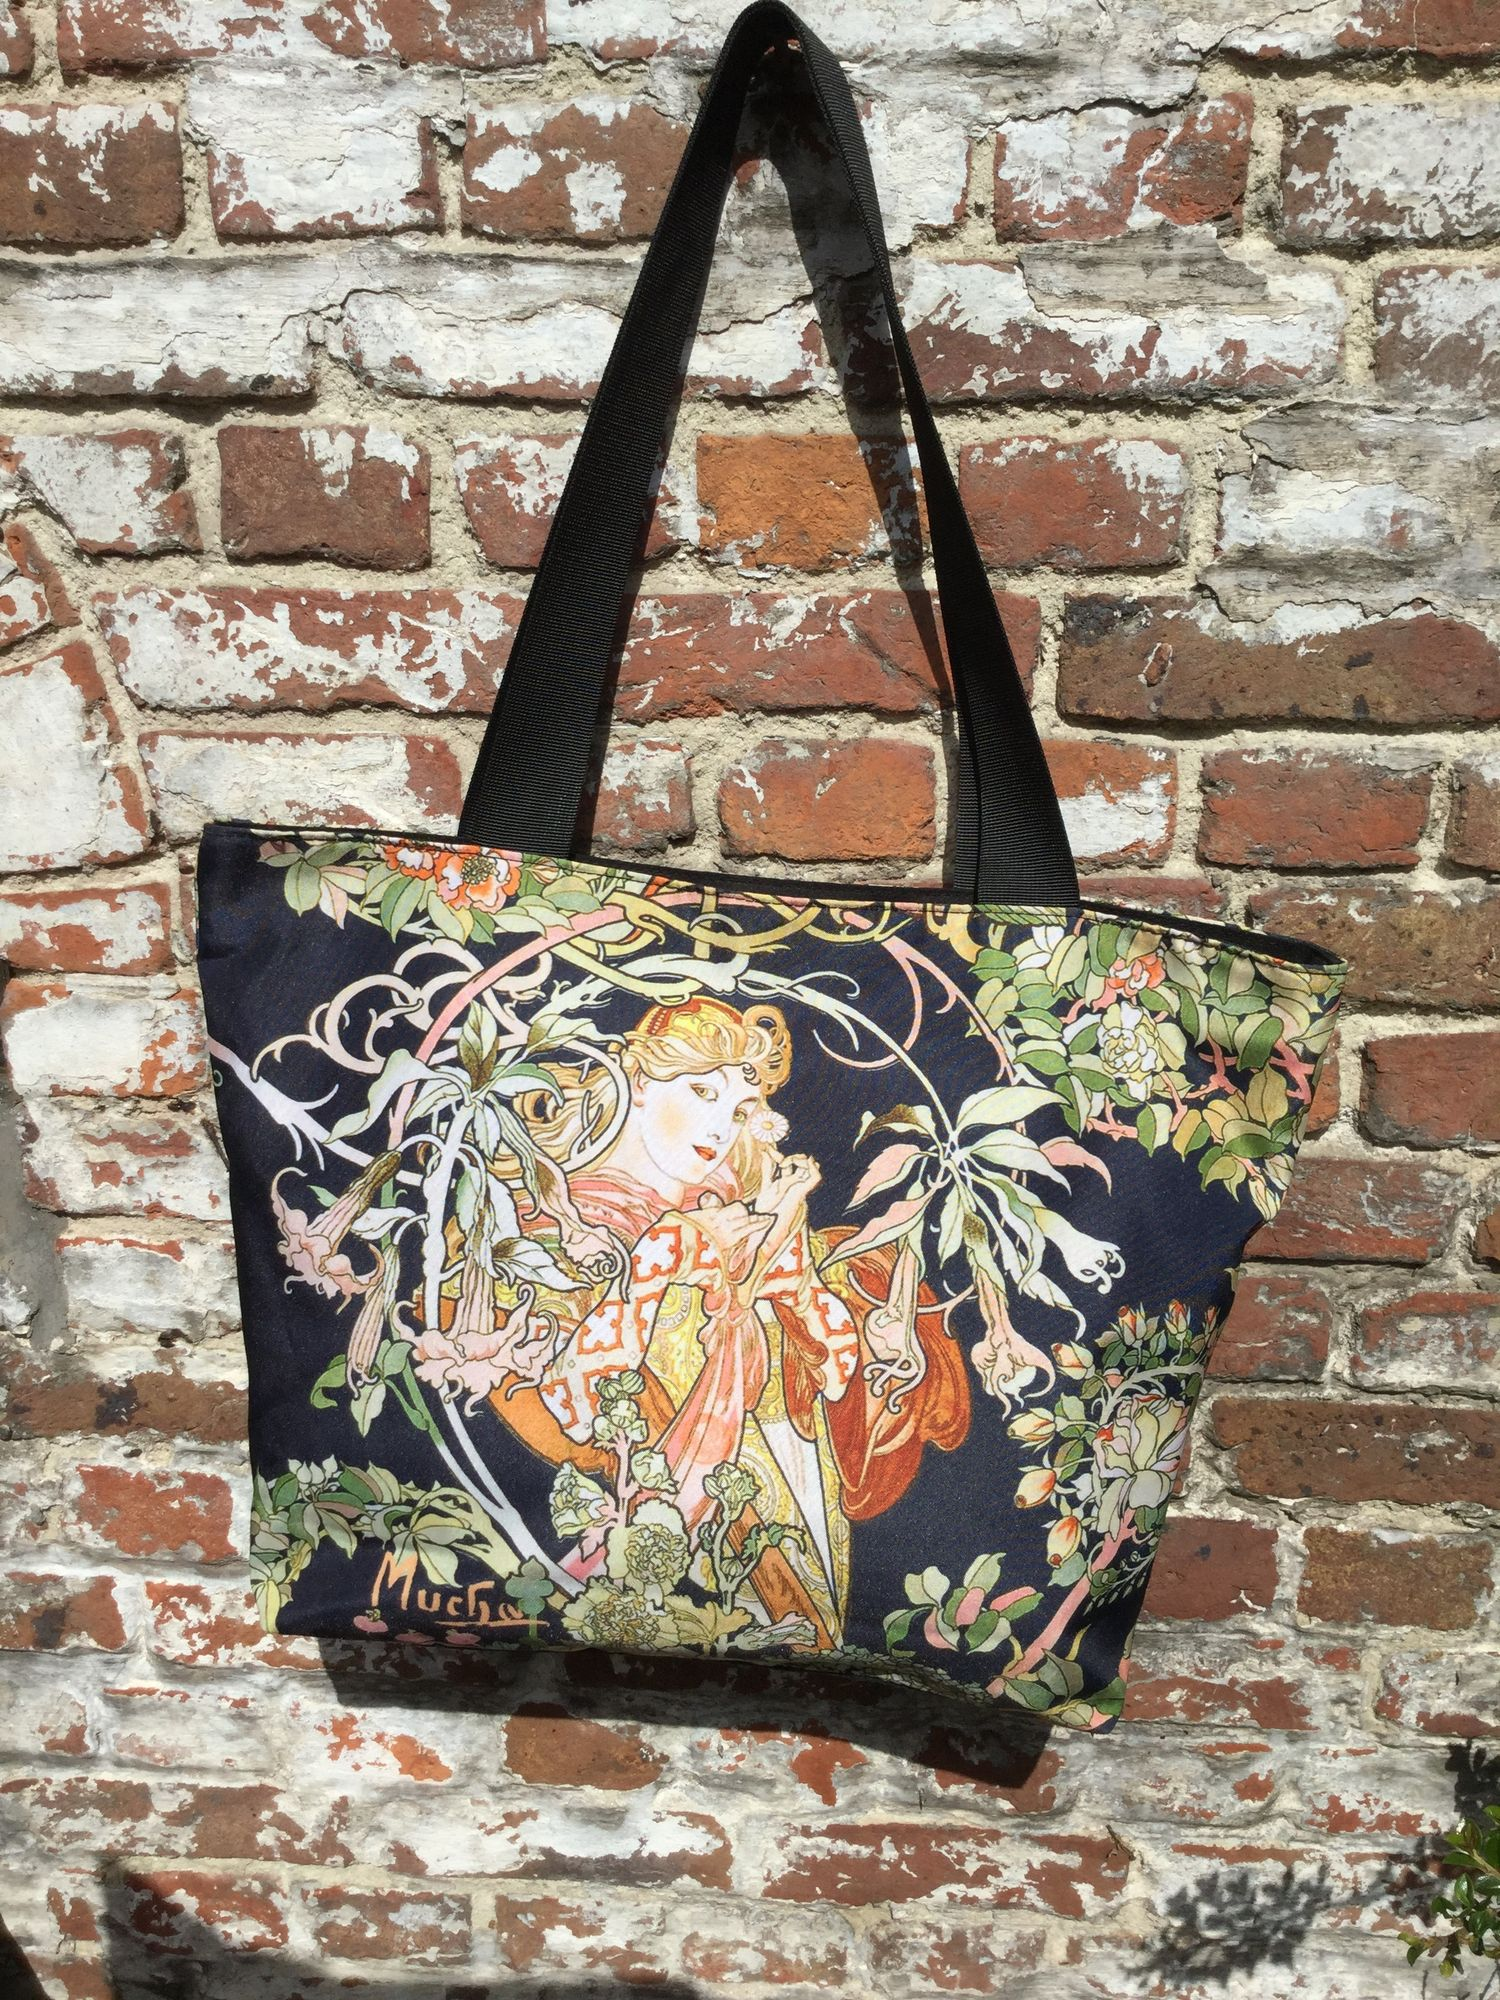 Tote Bag Small Woman with Daisies by Mucha - Avant-Garden UK b6cc5f1458980